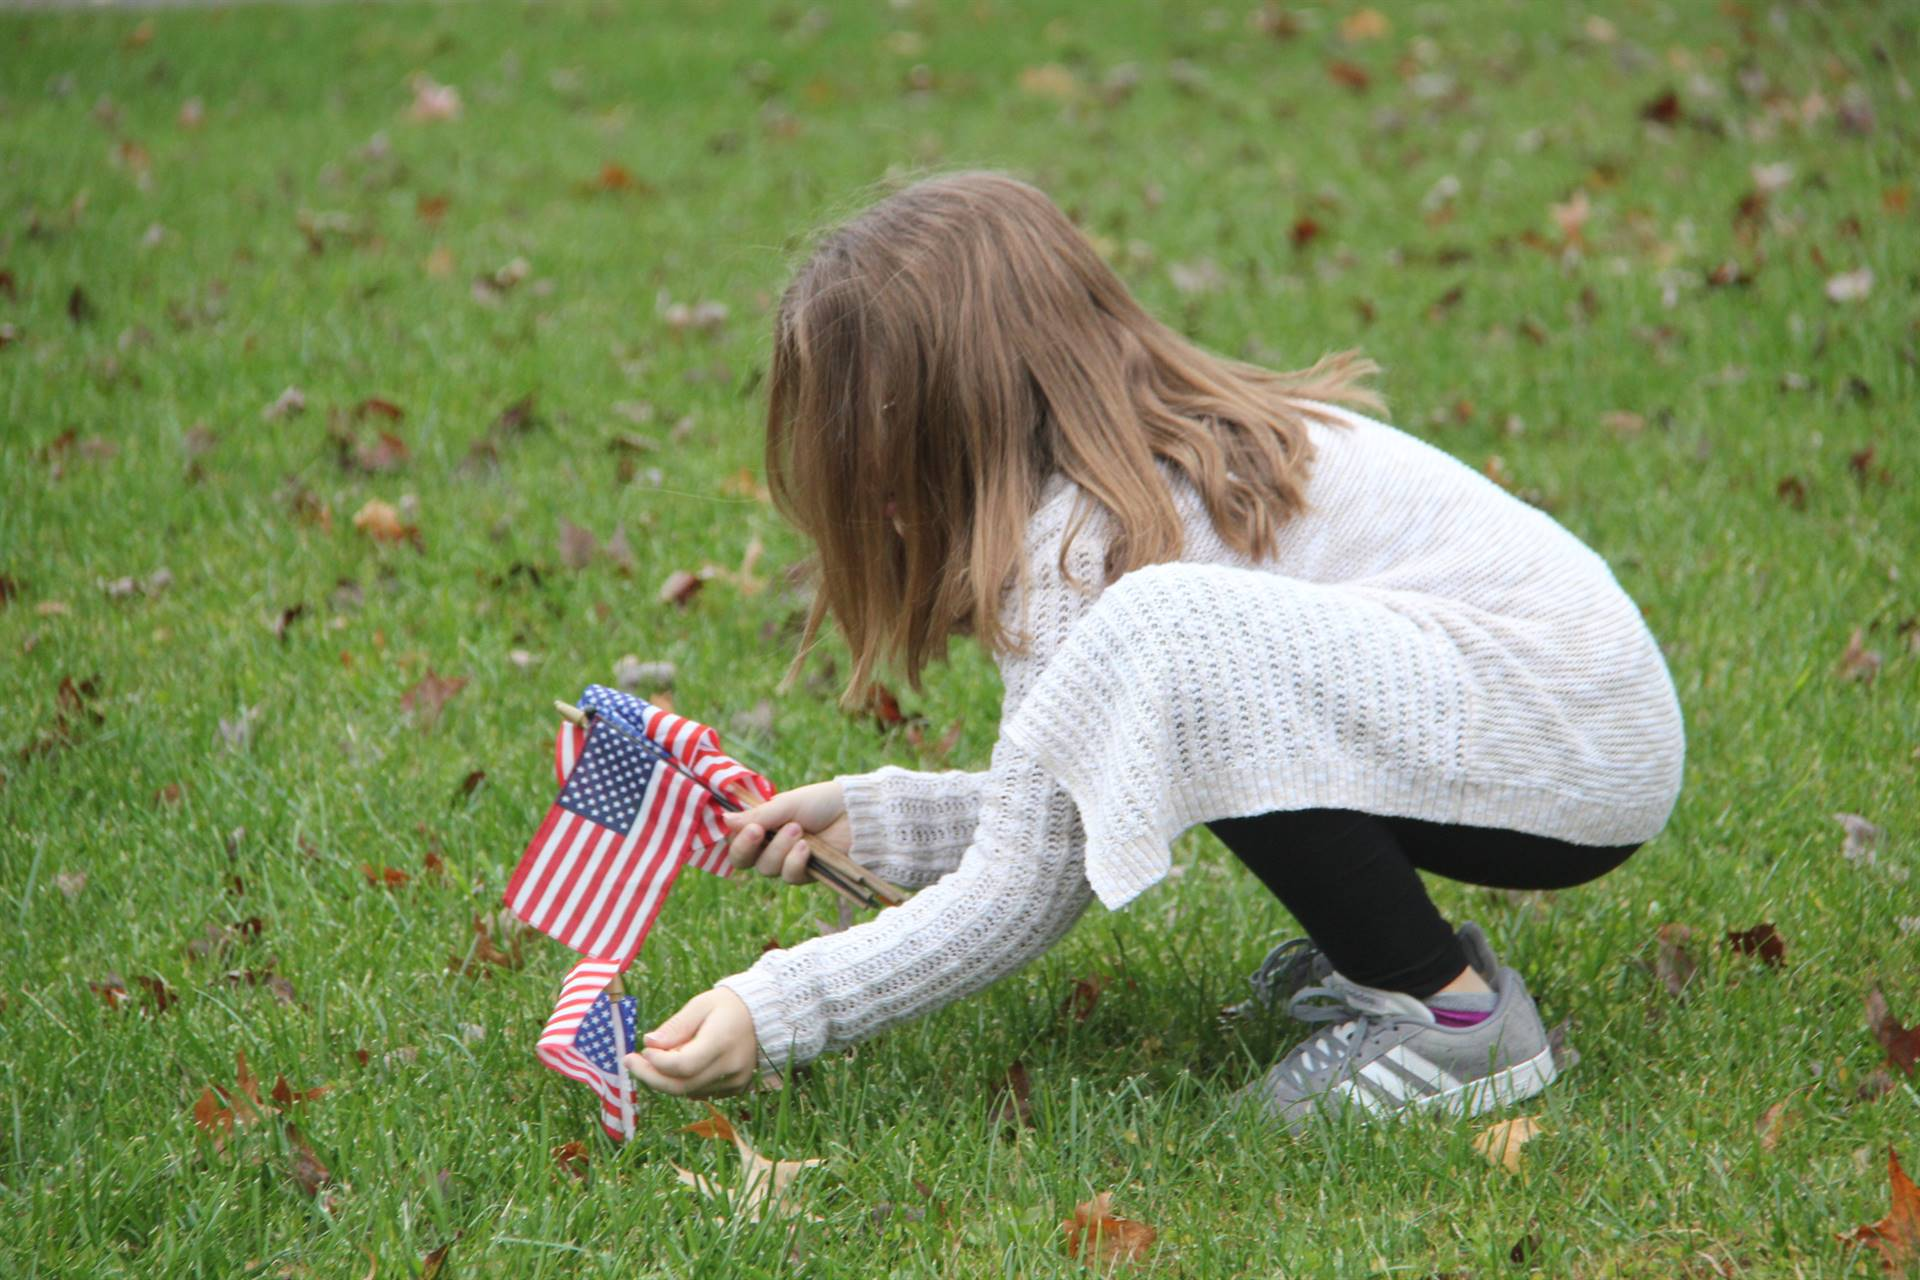 student placing small american flag in grass